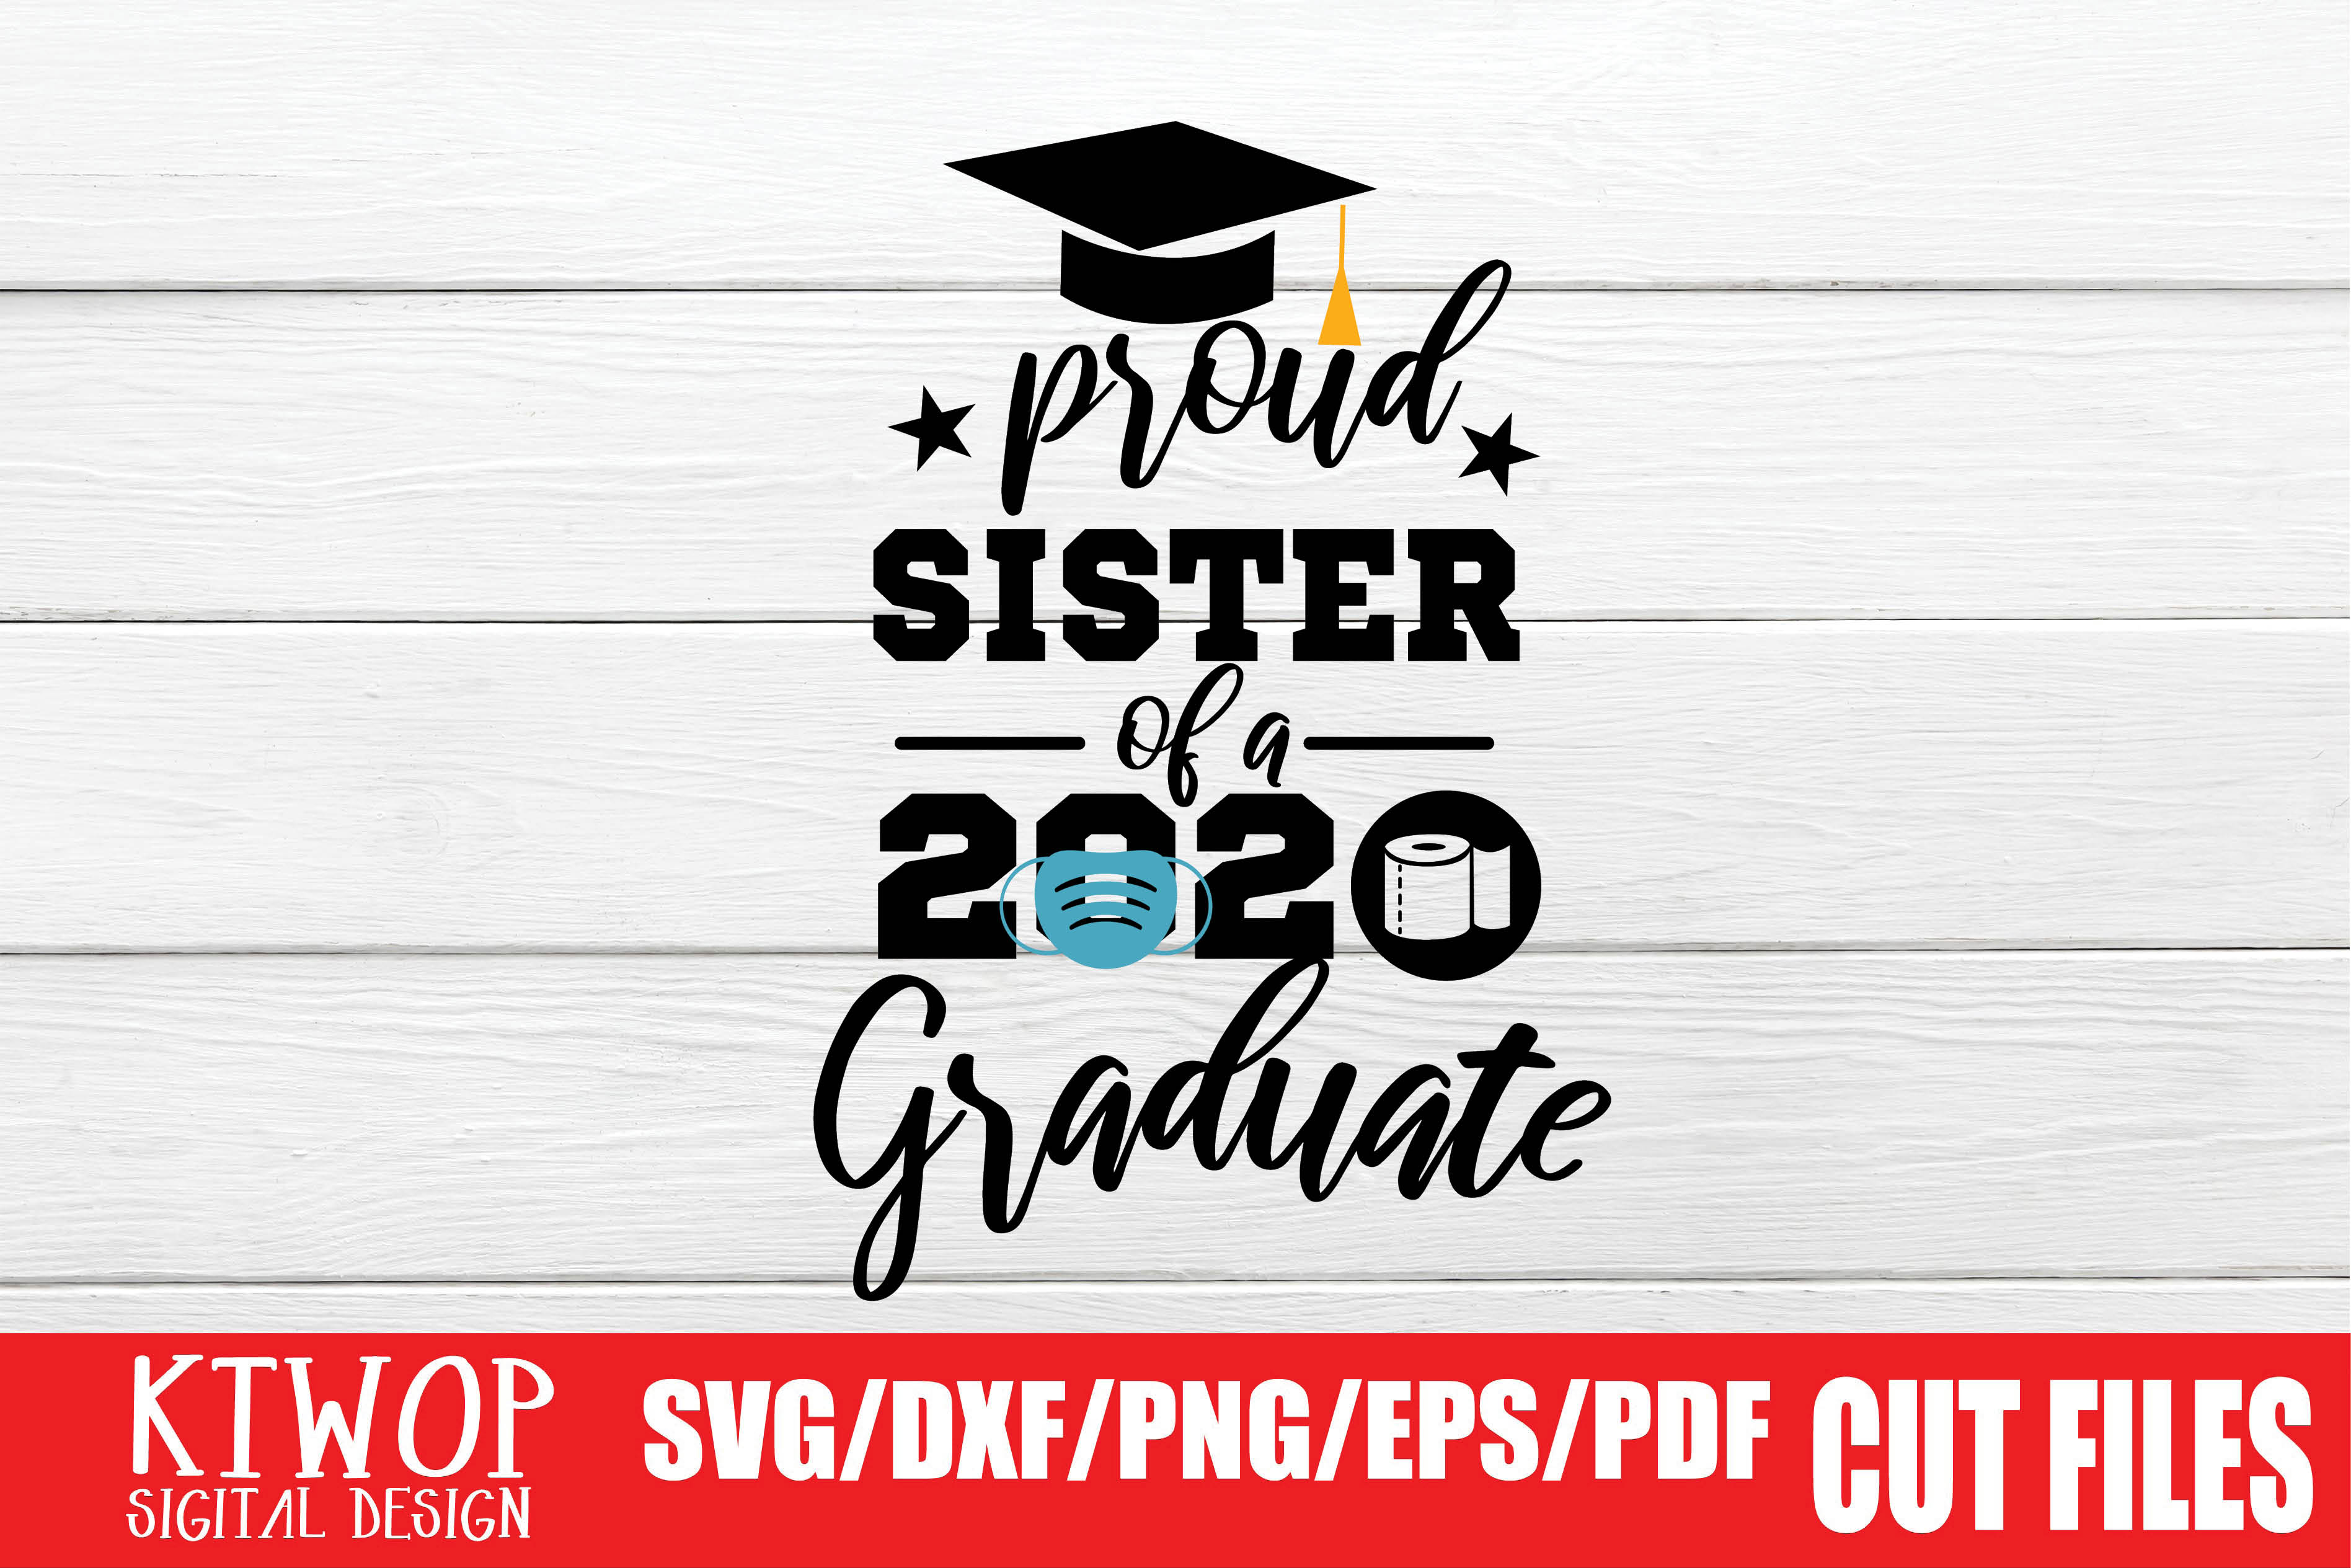 Download Free Proud Sister Graduation 2020 Quarantine Graphic By Ktwop for Cricut Explore, Silhouette and other cutting machines.